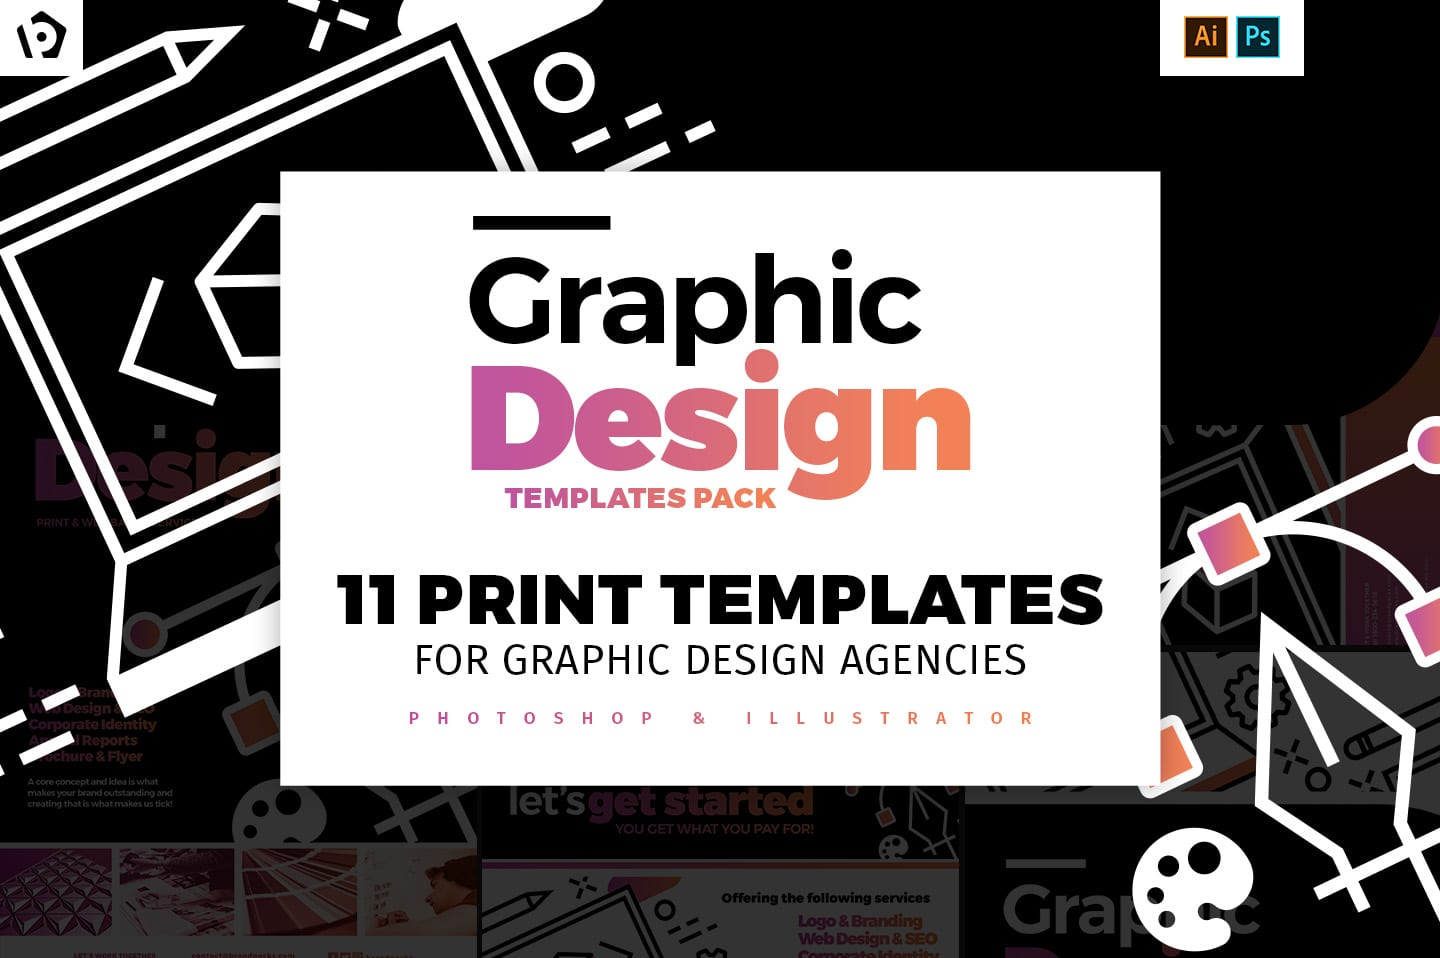 Graphic Design Agency Templates Pack